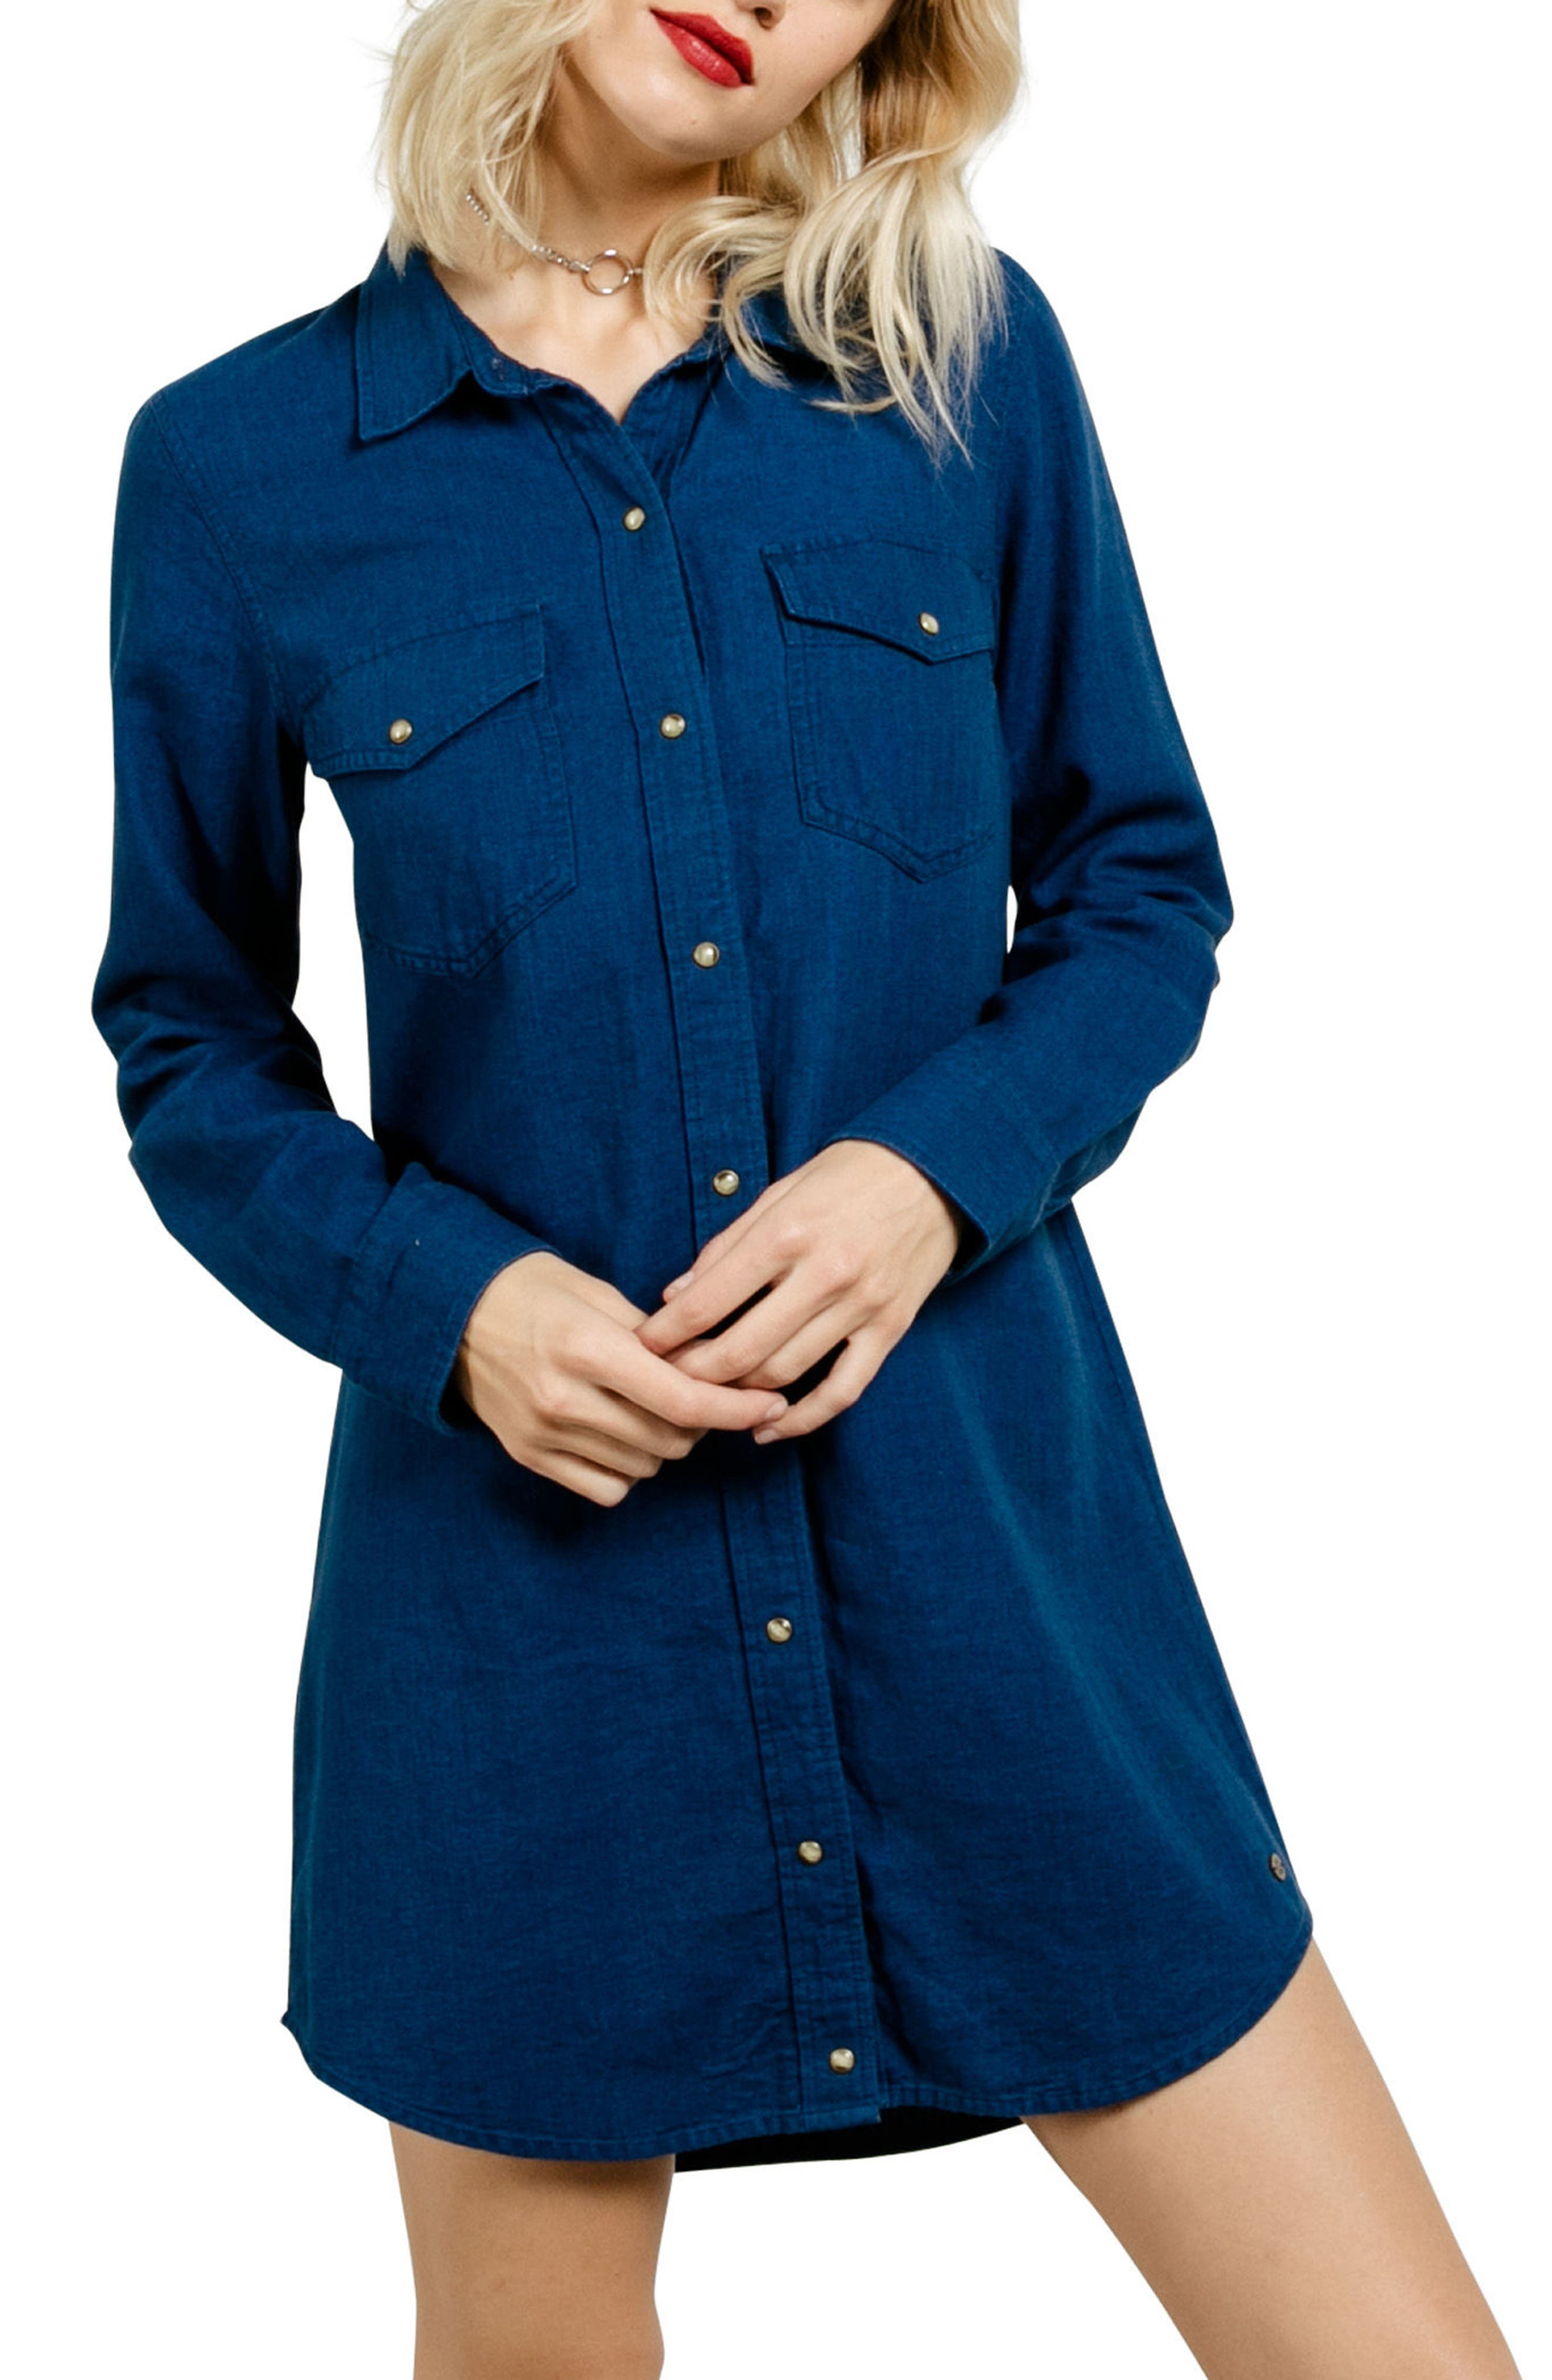 Cham Jam Chambray Shirtdress,                         Main,                         color, Blue